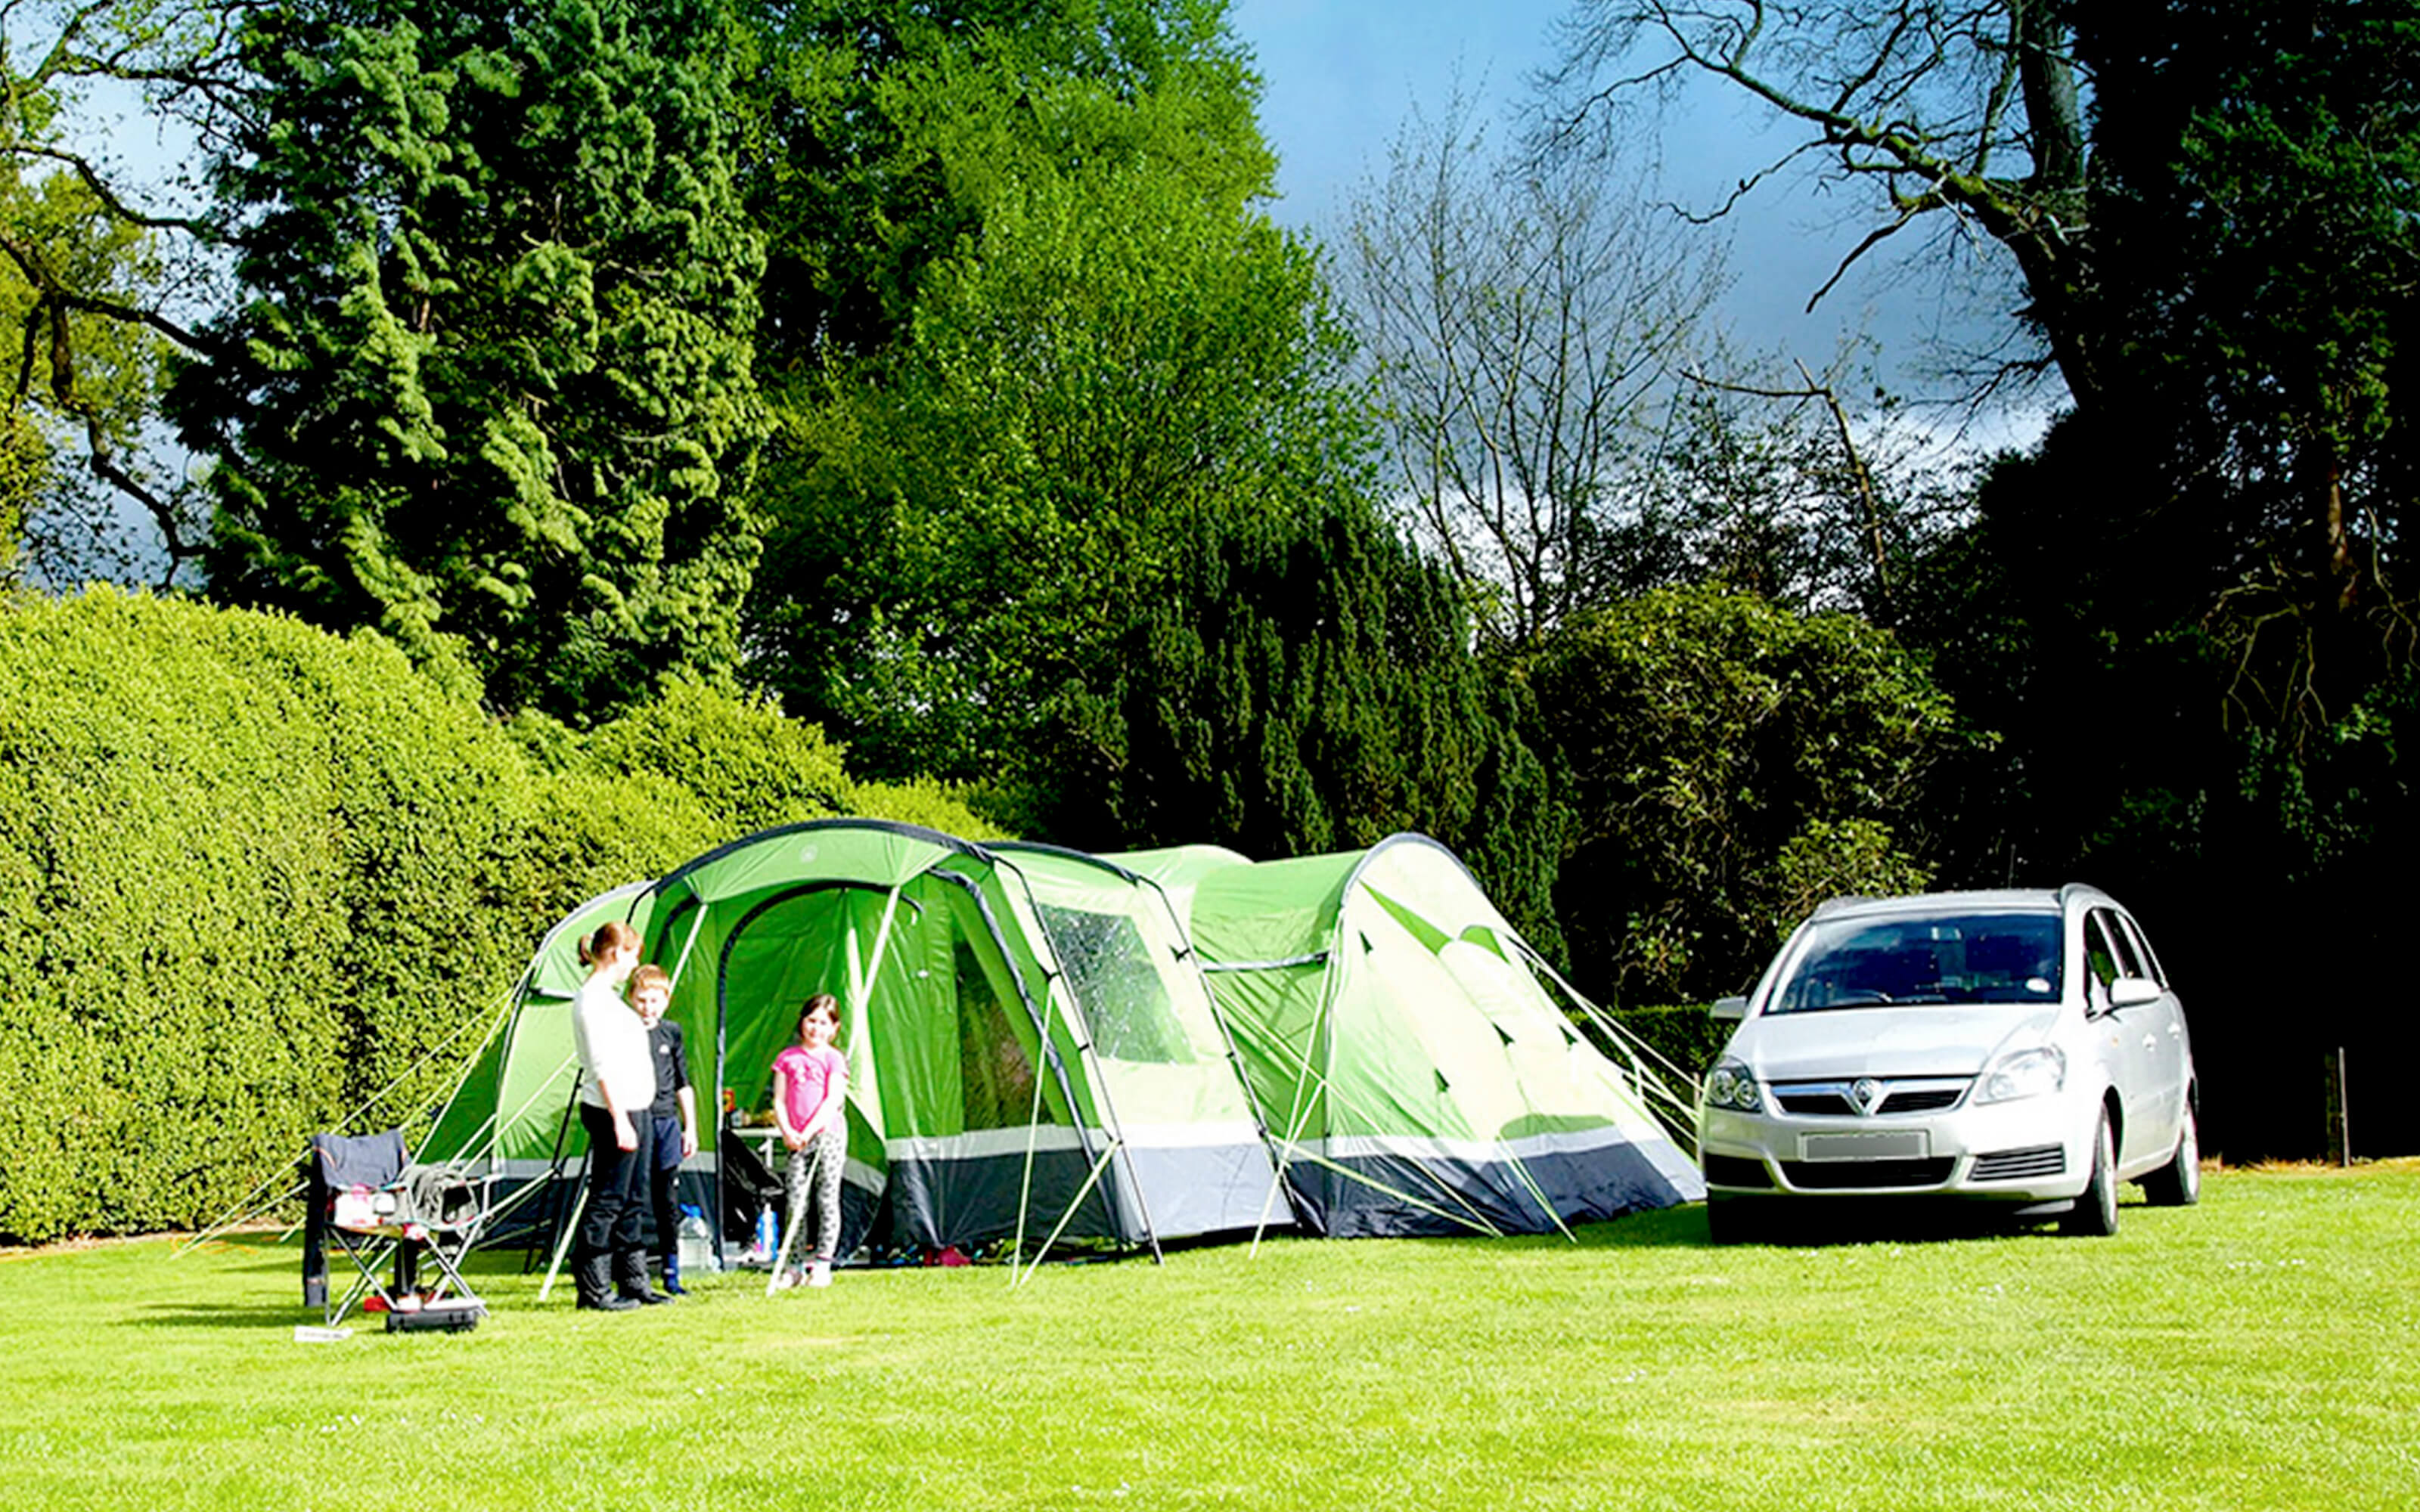 A family group setting up a large tent on a grass pitch.